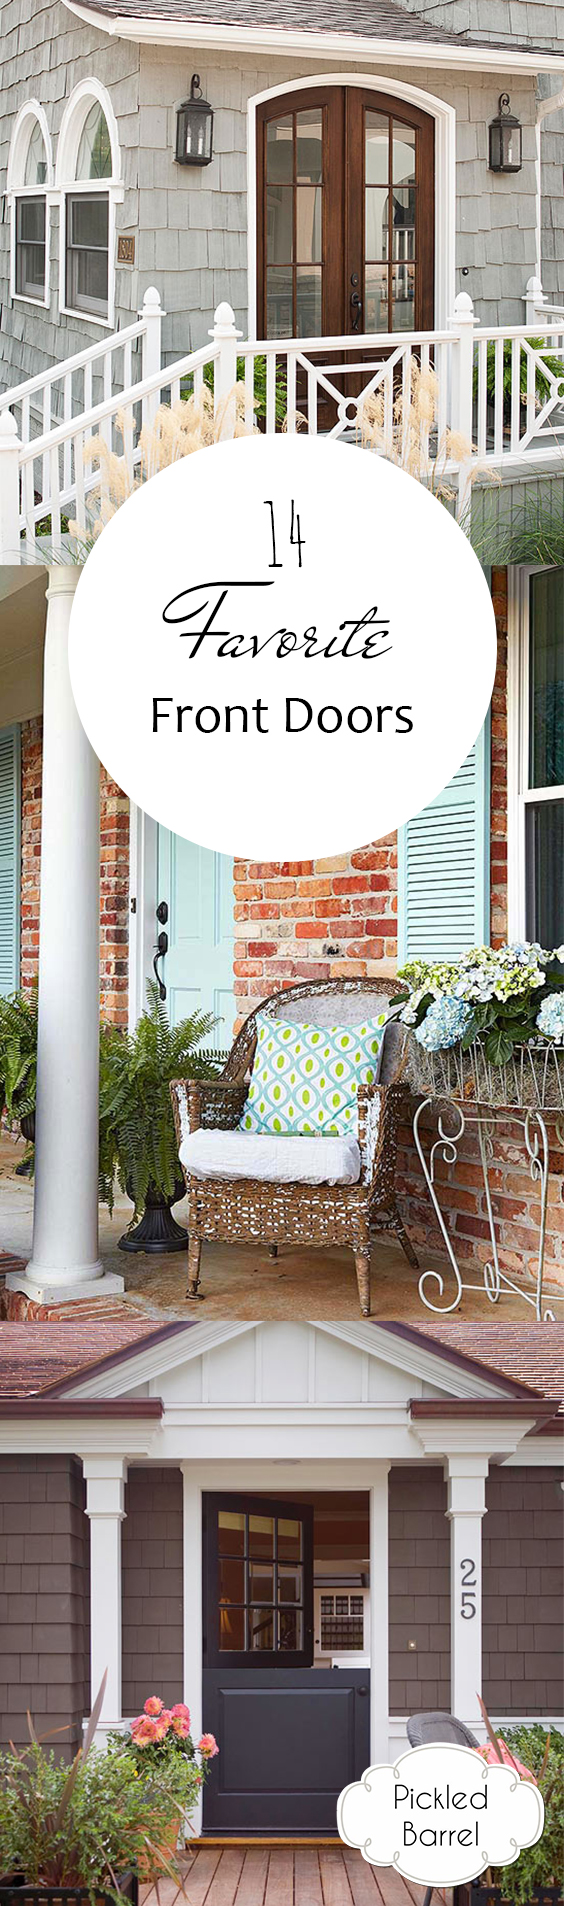 Front Doors, Beautiful Front Doors, Curb Appeal, Curb Appeal Projects, Popular Pin